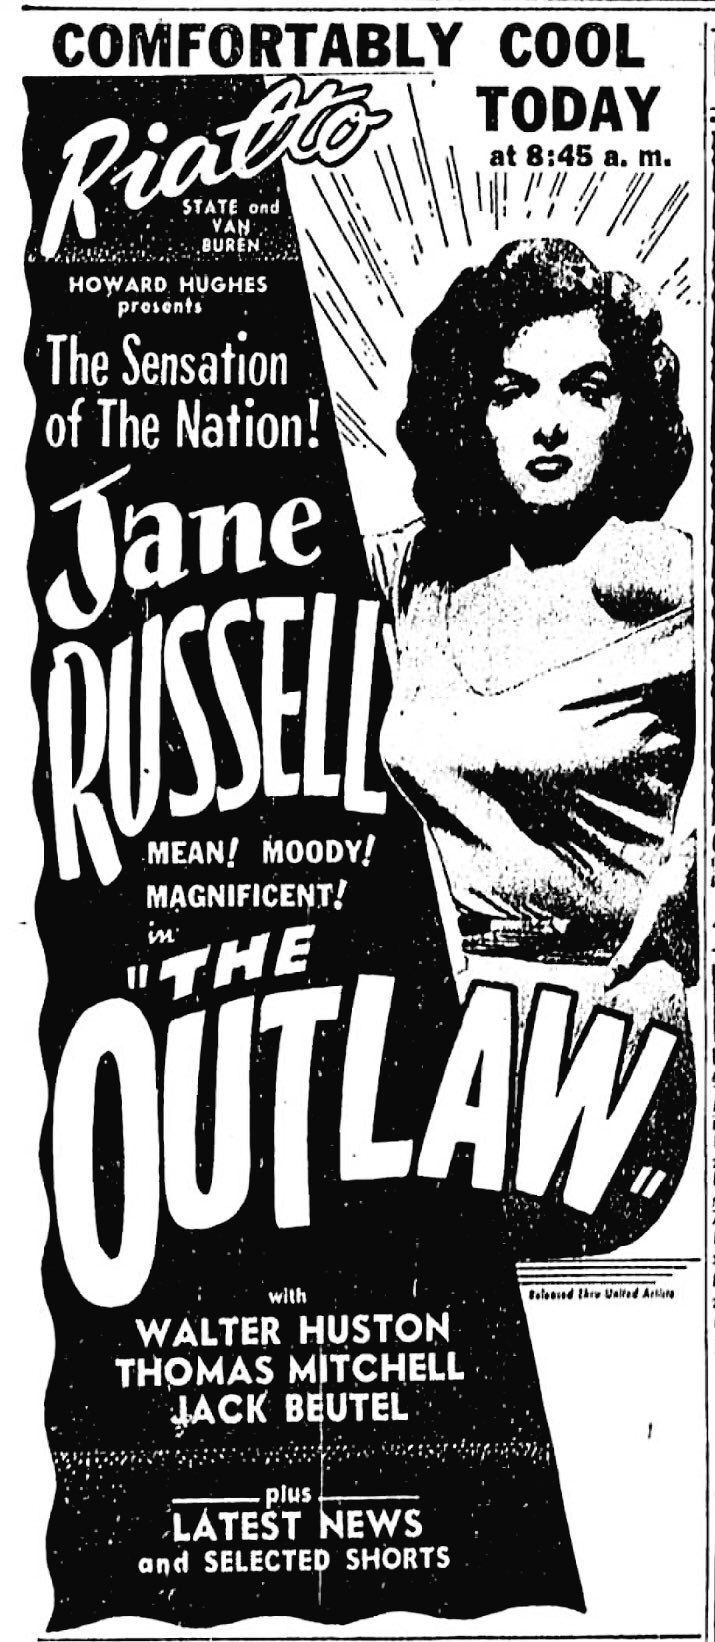 The Outlaw(1943) ※6/26/1947,Chicago Tribune